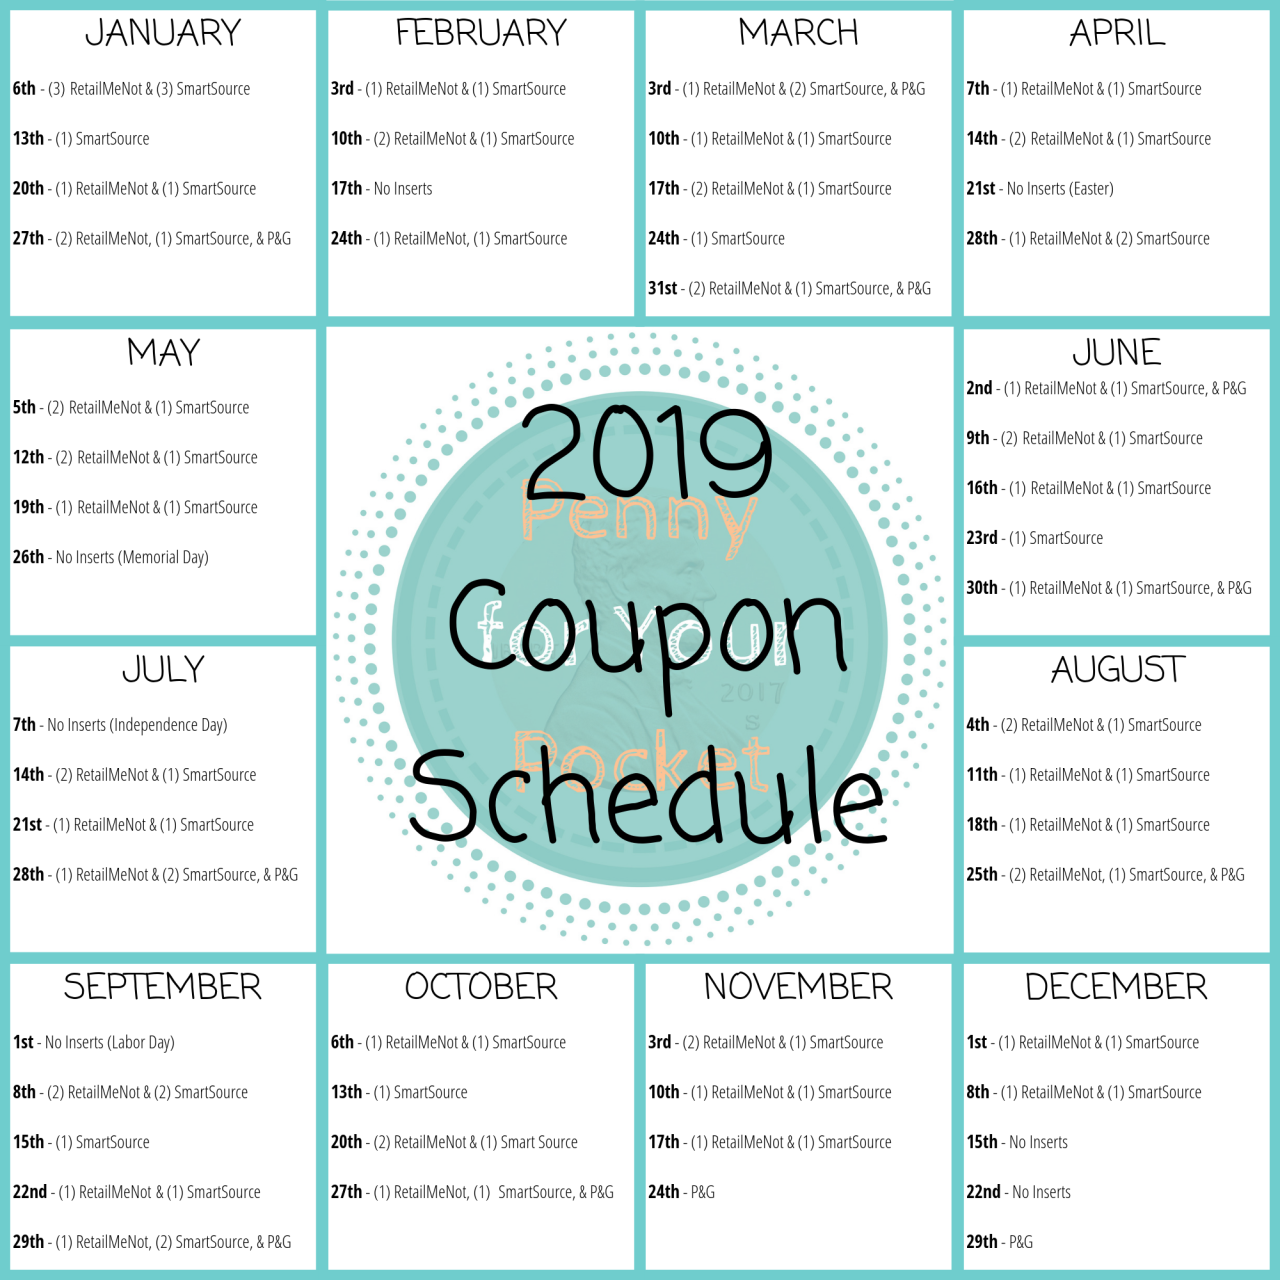 2019 Coupon Insert Schedule Don T Miss Any Of The Sunday Paper Coupon Inserts In 2019 Use This 2019 Sunday Coupon Coupon Inserts Sunday Paper Coupons Coupons